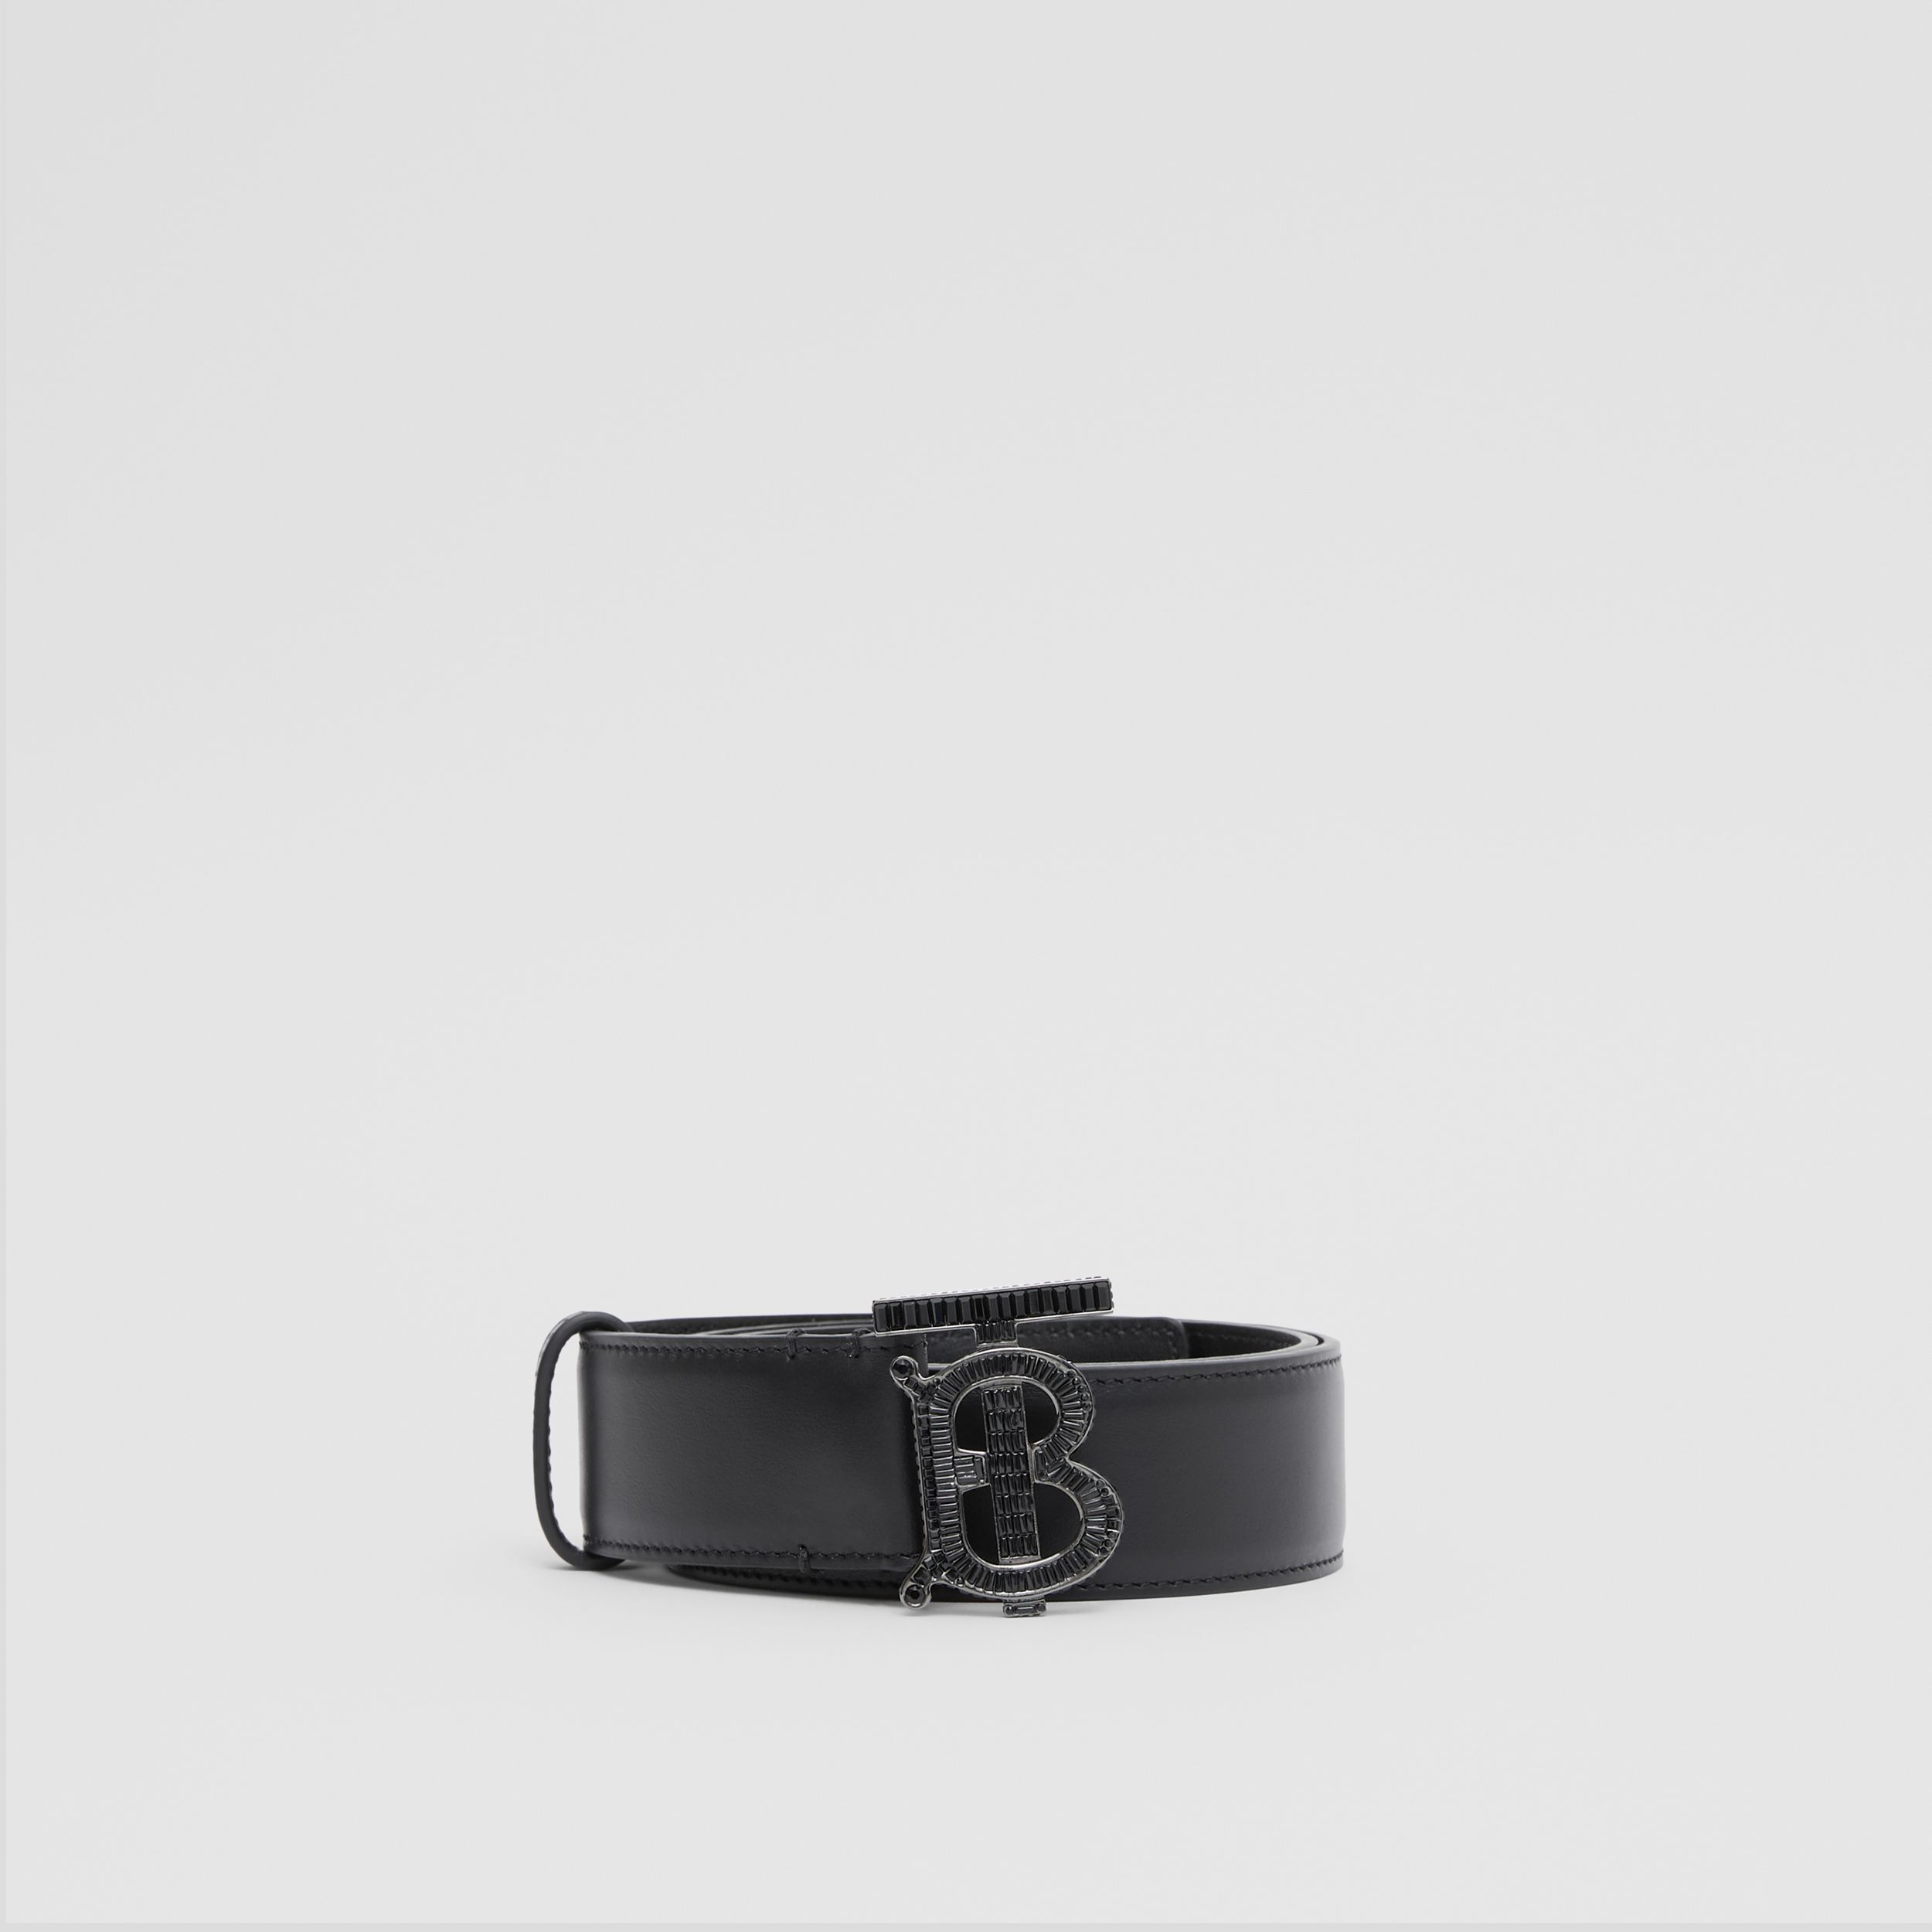 Crystal Monogram Motif Leather Belt in Black | Burberry - 4